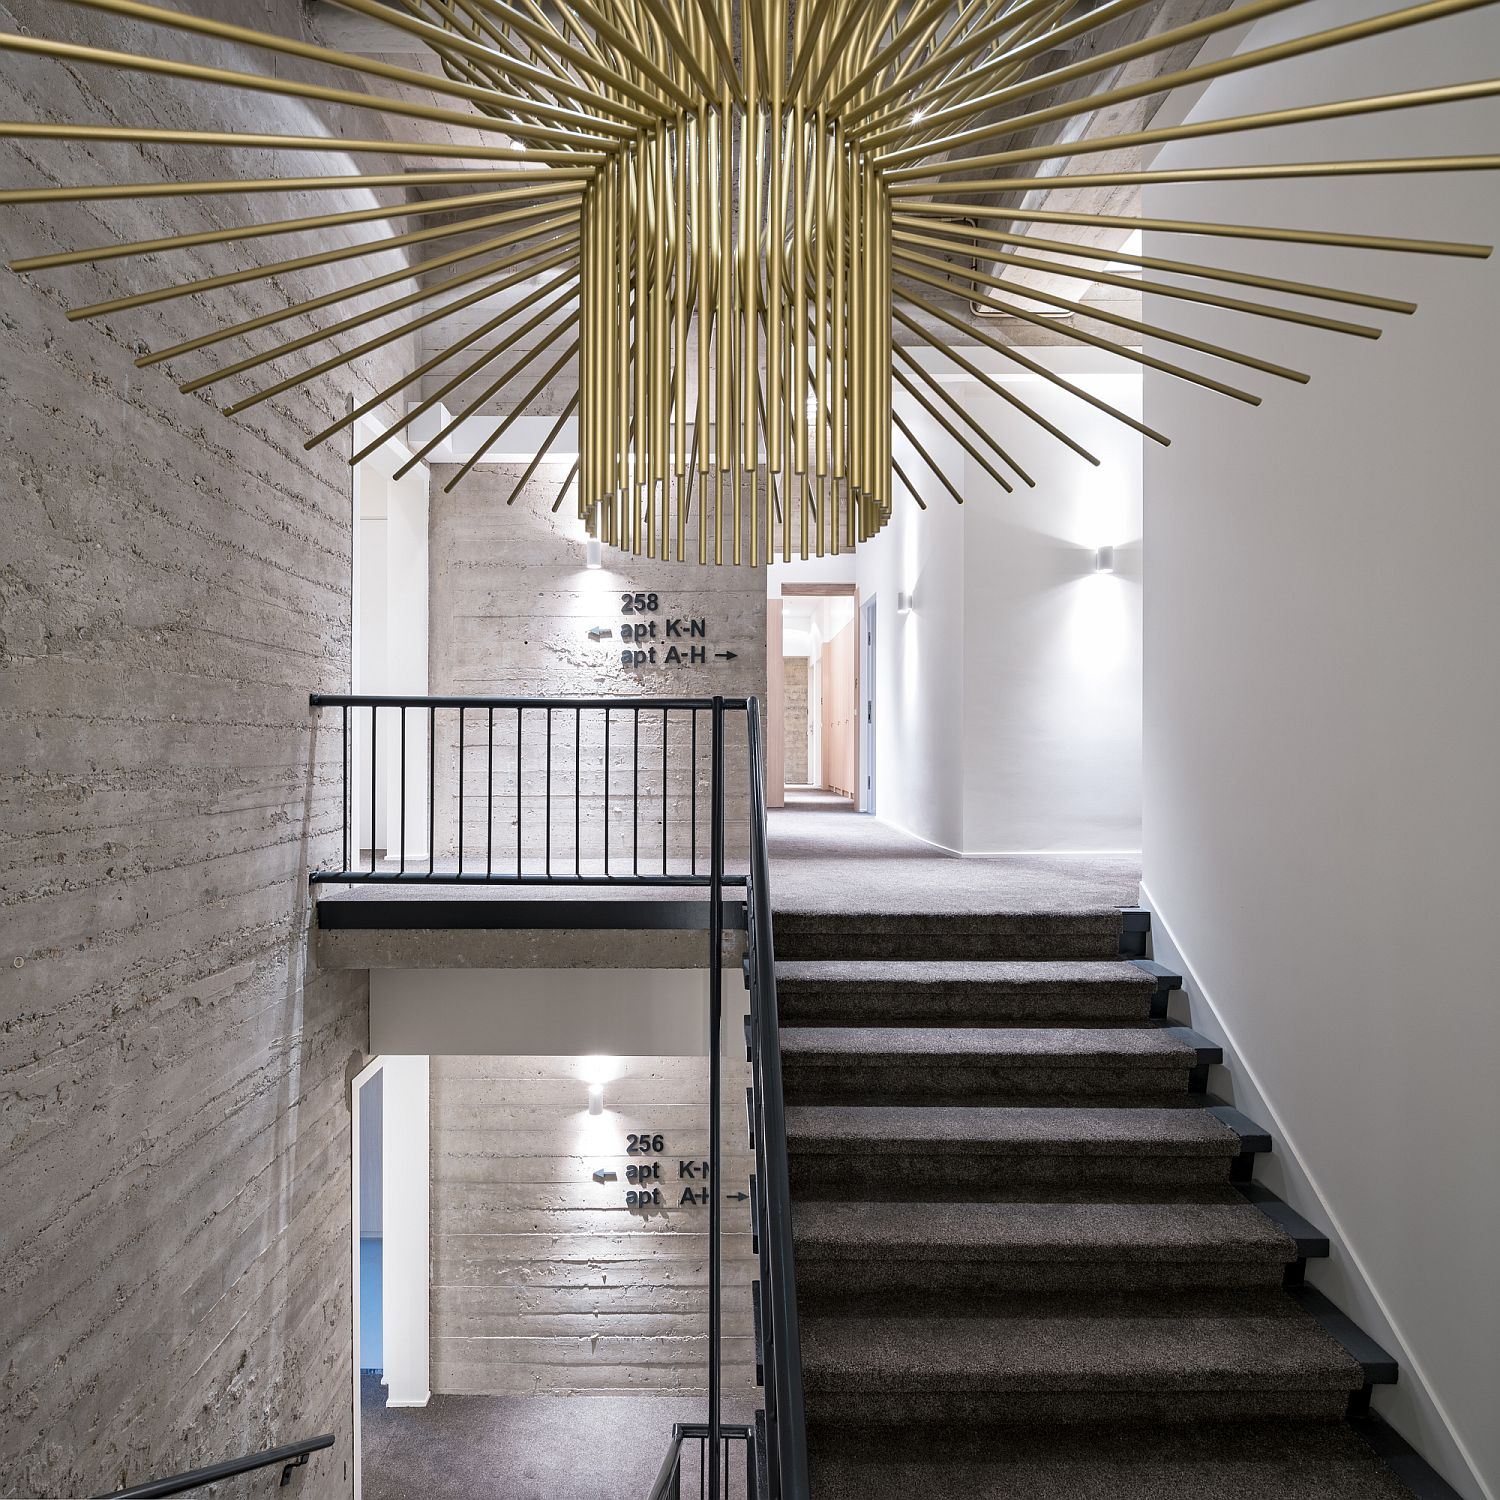 Entry into the Urban Lofts building